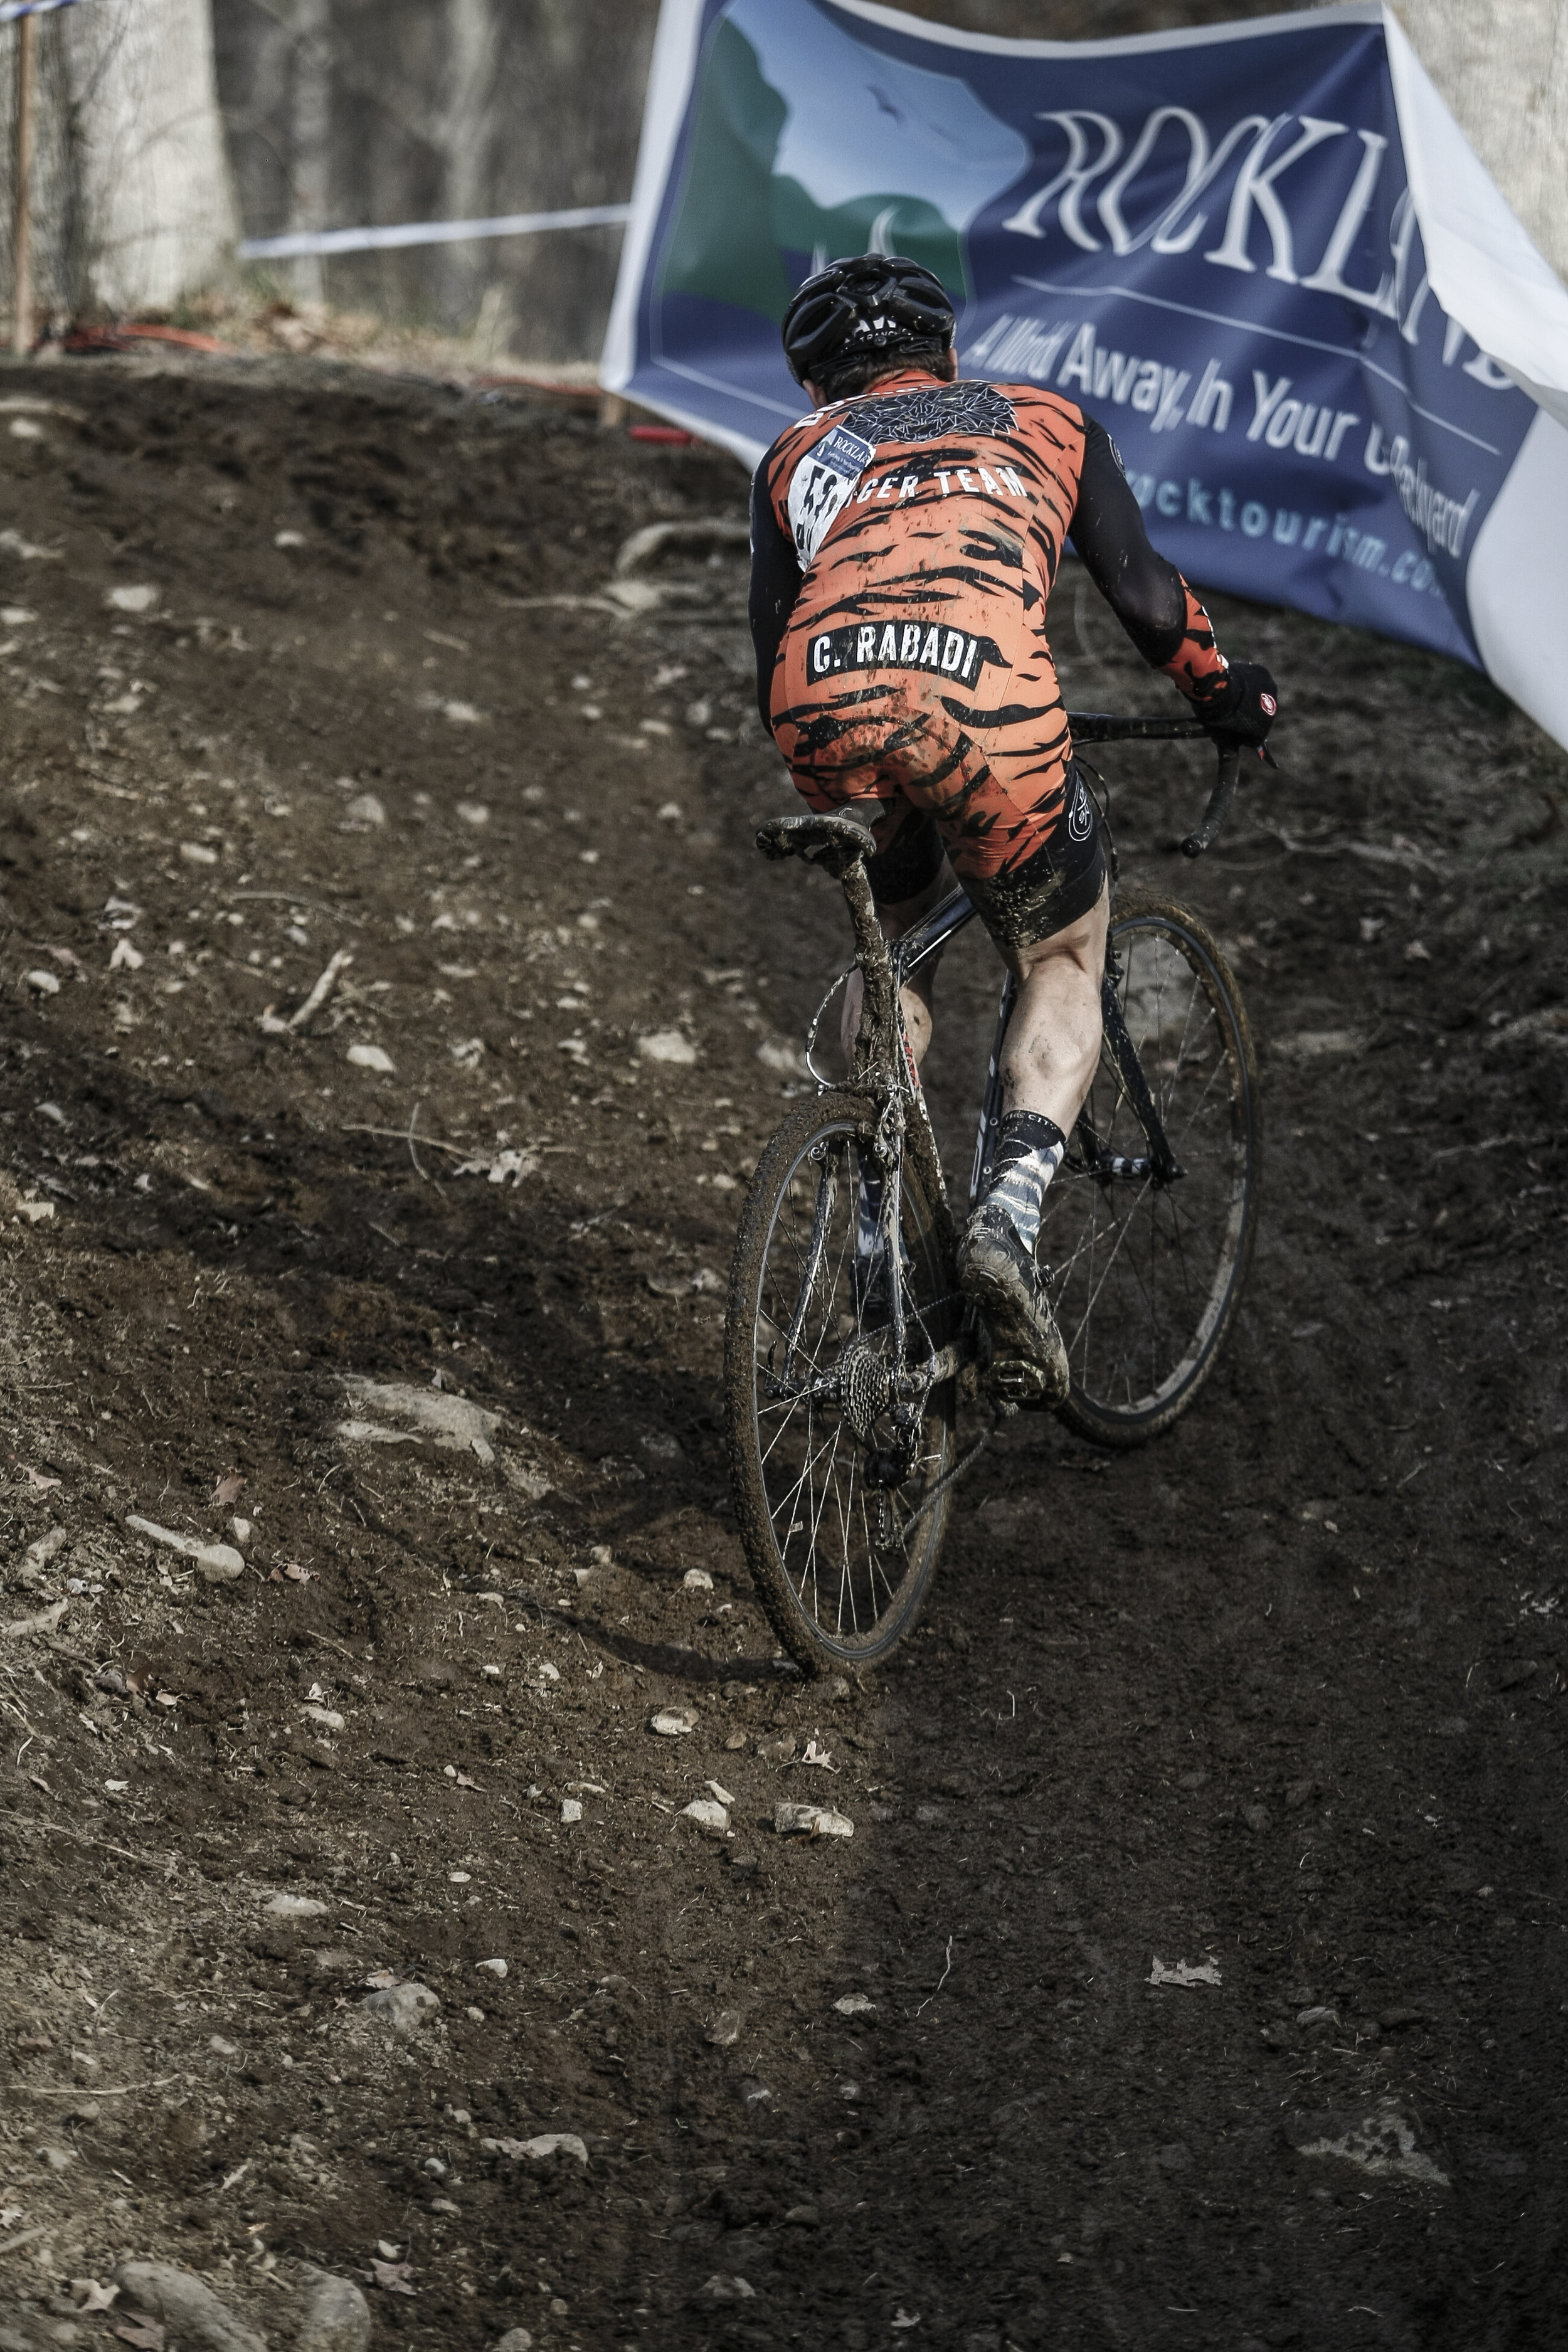 Supercross2014_hires-22.jpg